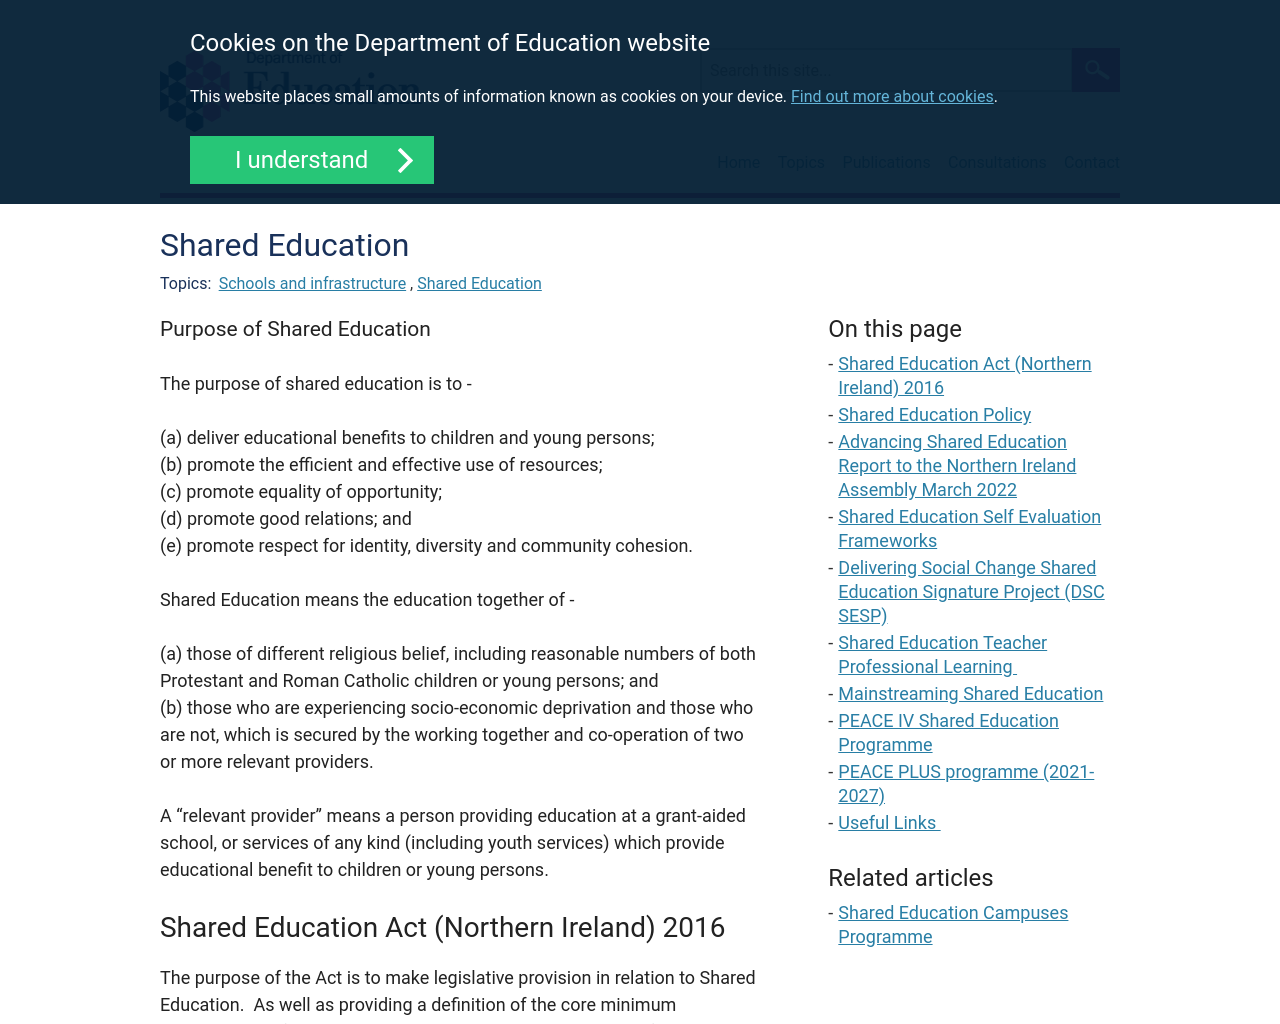 Find out more about Shared Education